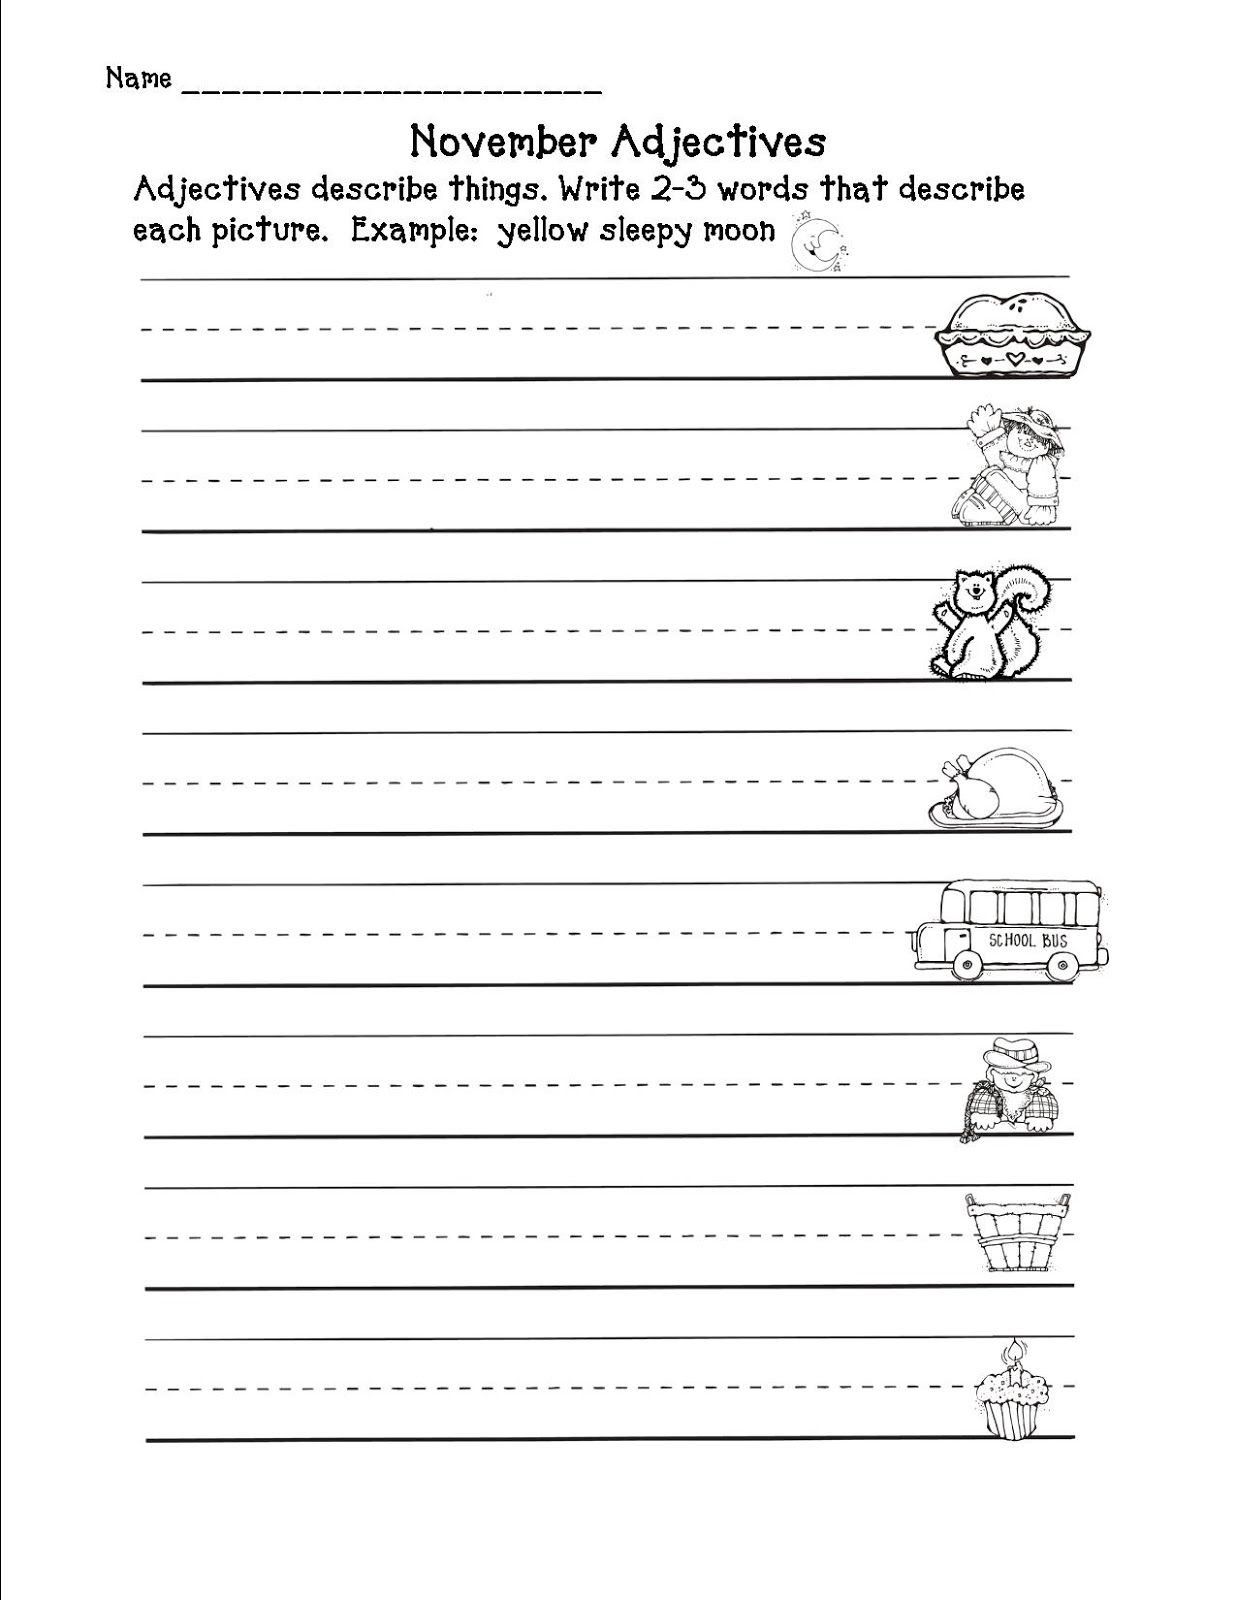 hight resolution of November Adjectives Worksheet Second Grade Freebies   Second grade  freebies